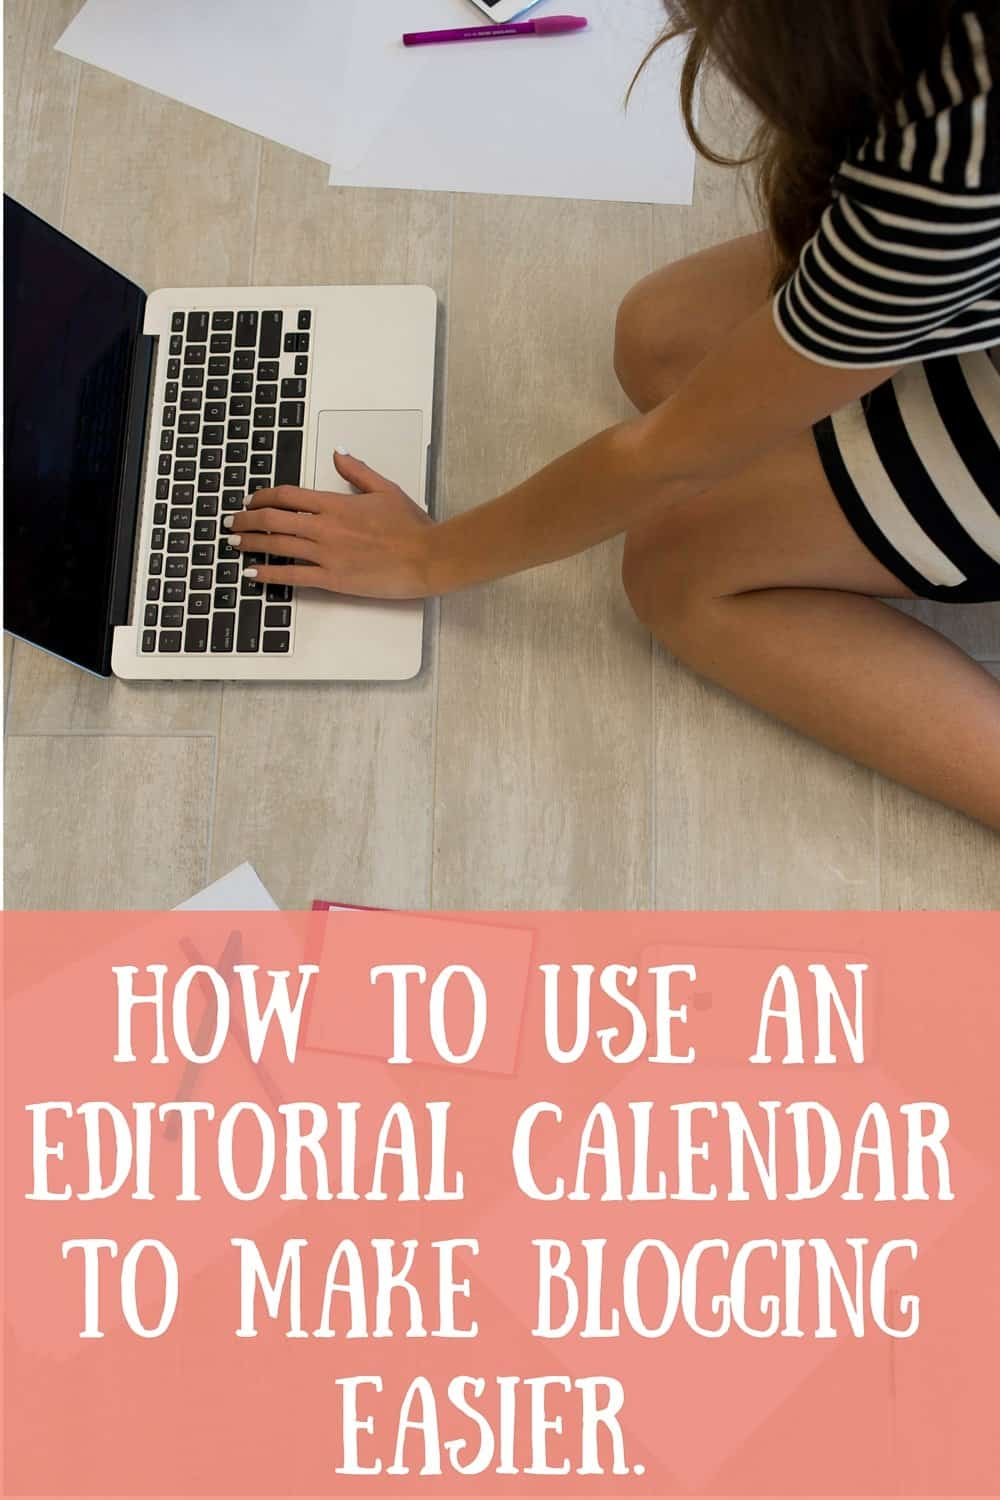 How to use an editorial calendar to make blogging easier. What scheduling programs I've tried and what worked and what didn't. Having an editorial has really helped my blog stay organized and grow.